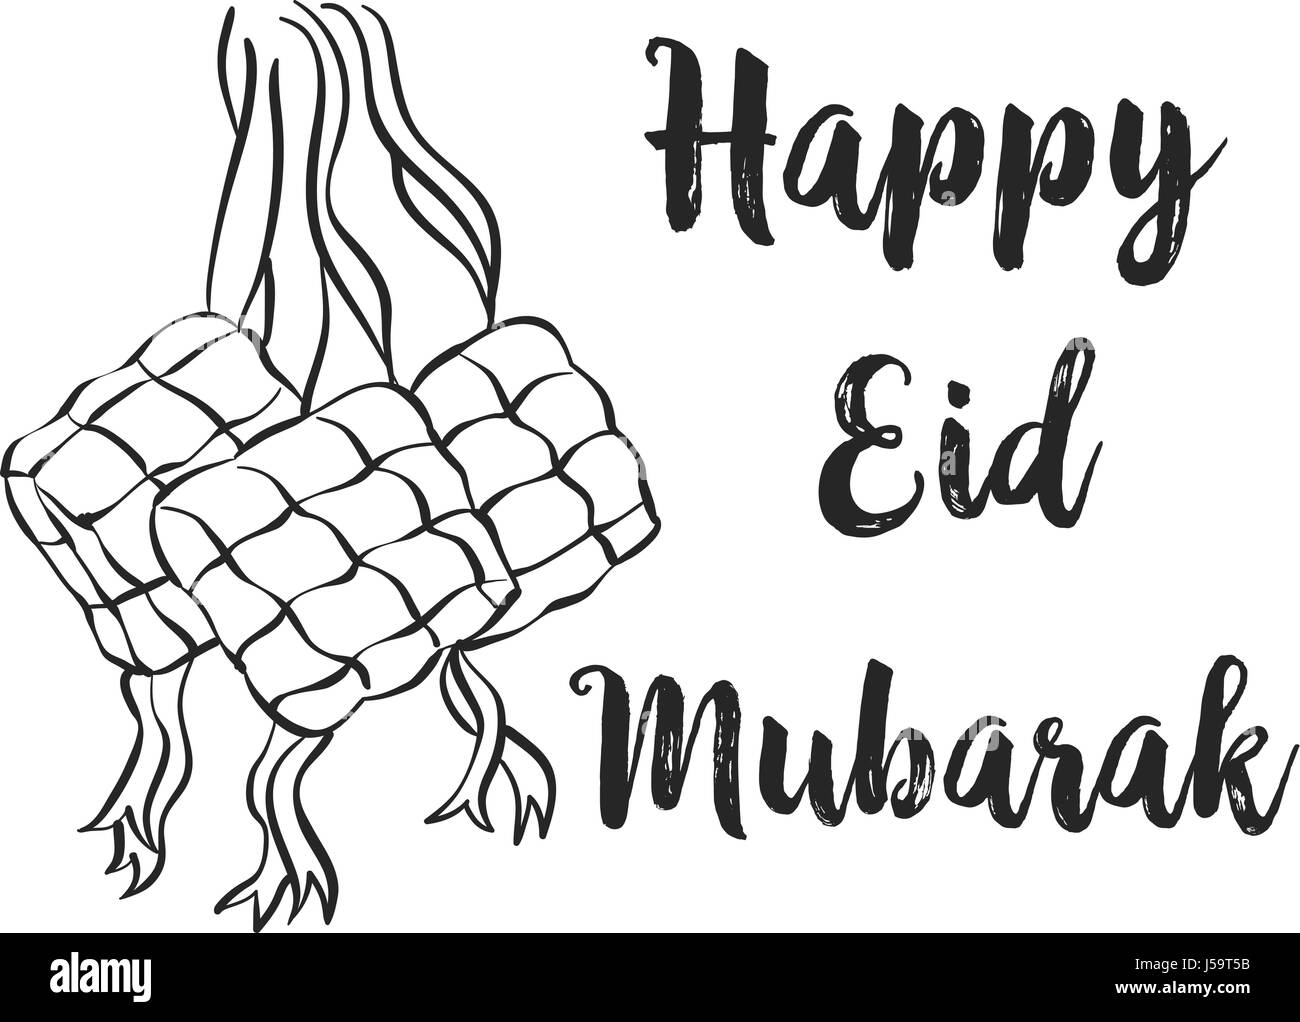 Hand draw greeting card design eid mubarak stock vector art hand draw greeting card design eid mubarak m4hsunfo